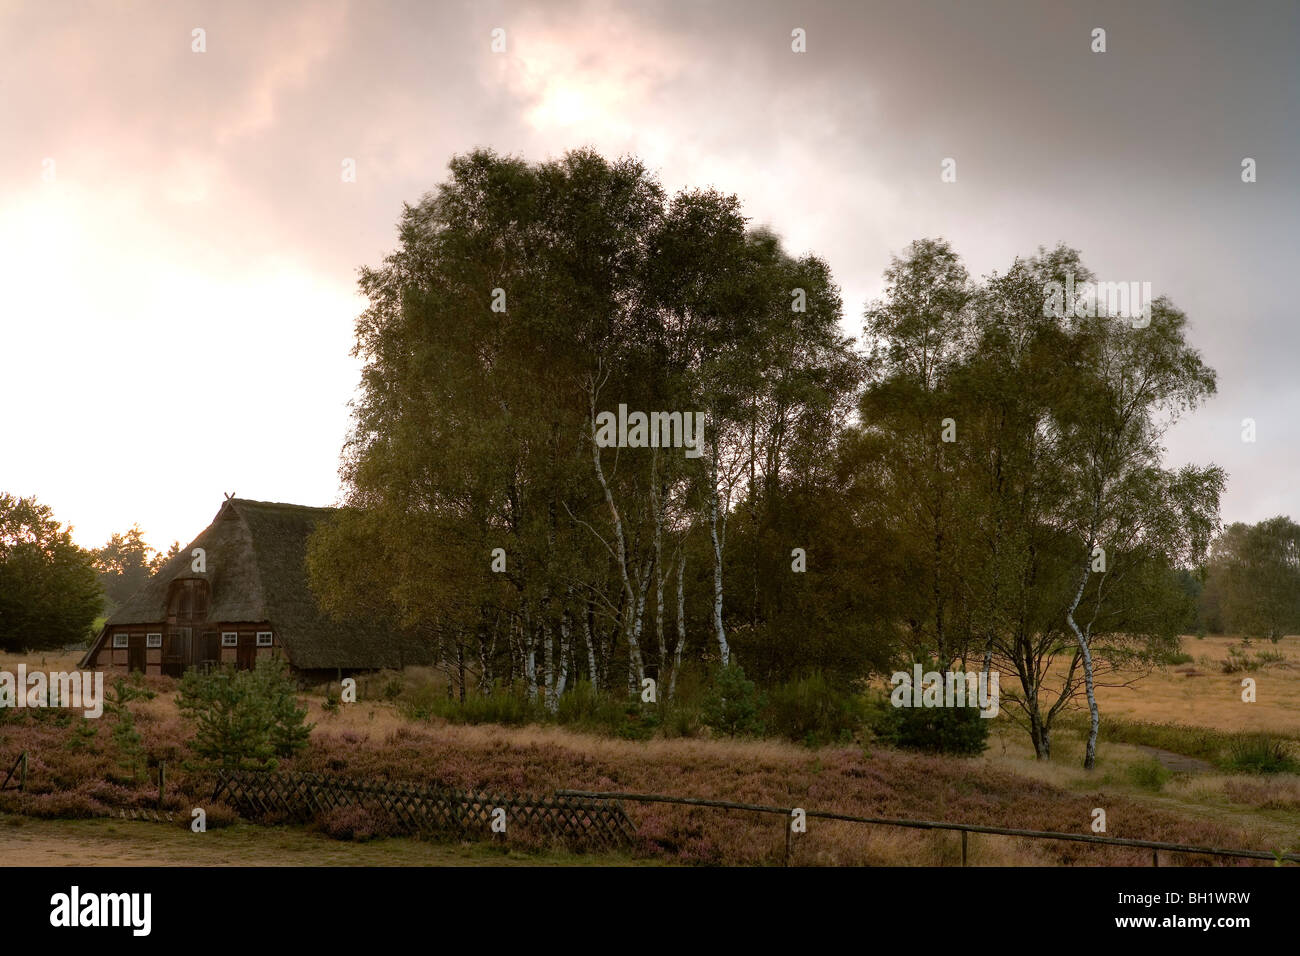 Country house and birch trees in the light of the morning sun, Luneburg Heath, Lower Saxony, Germany, Europe - Stock Image